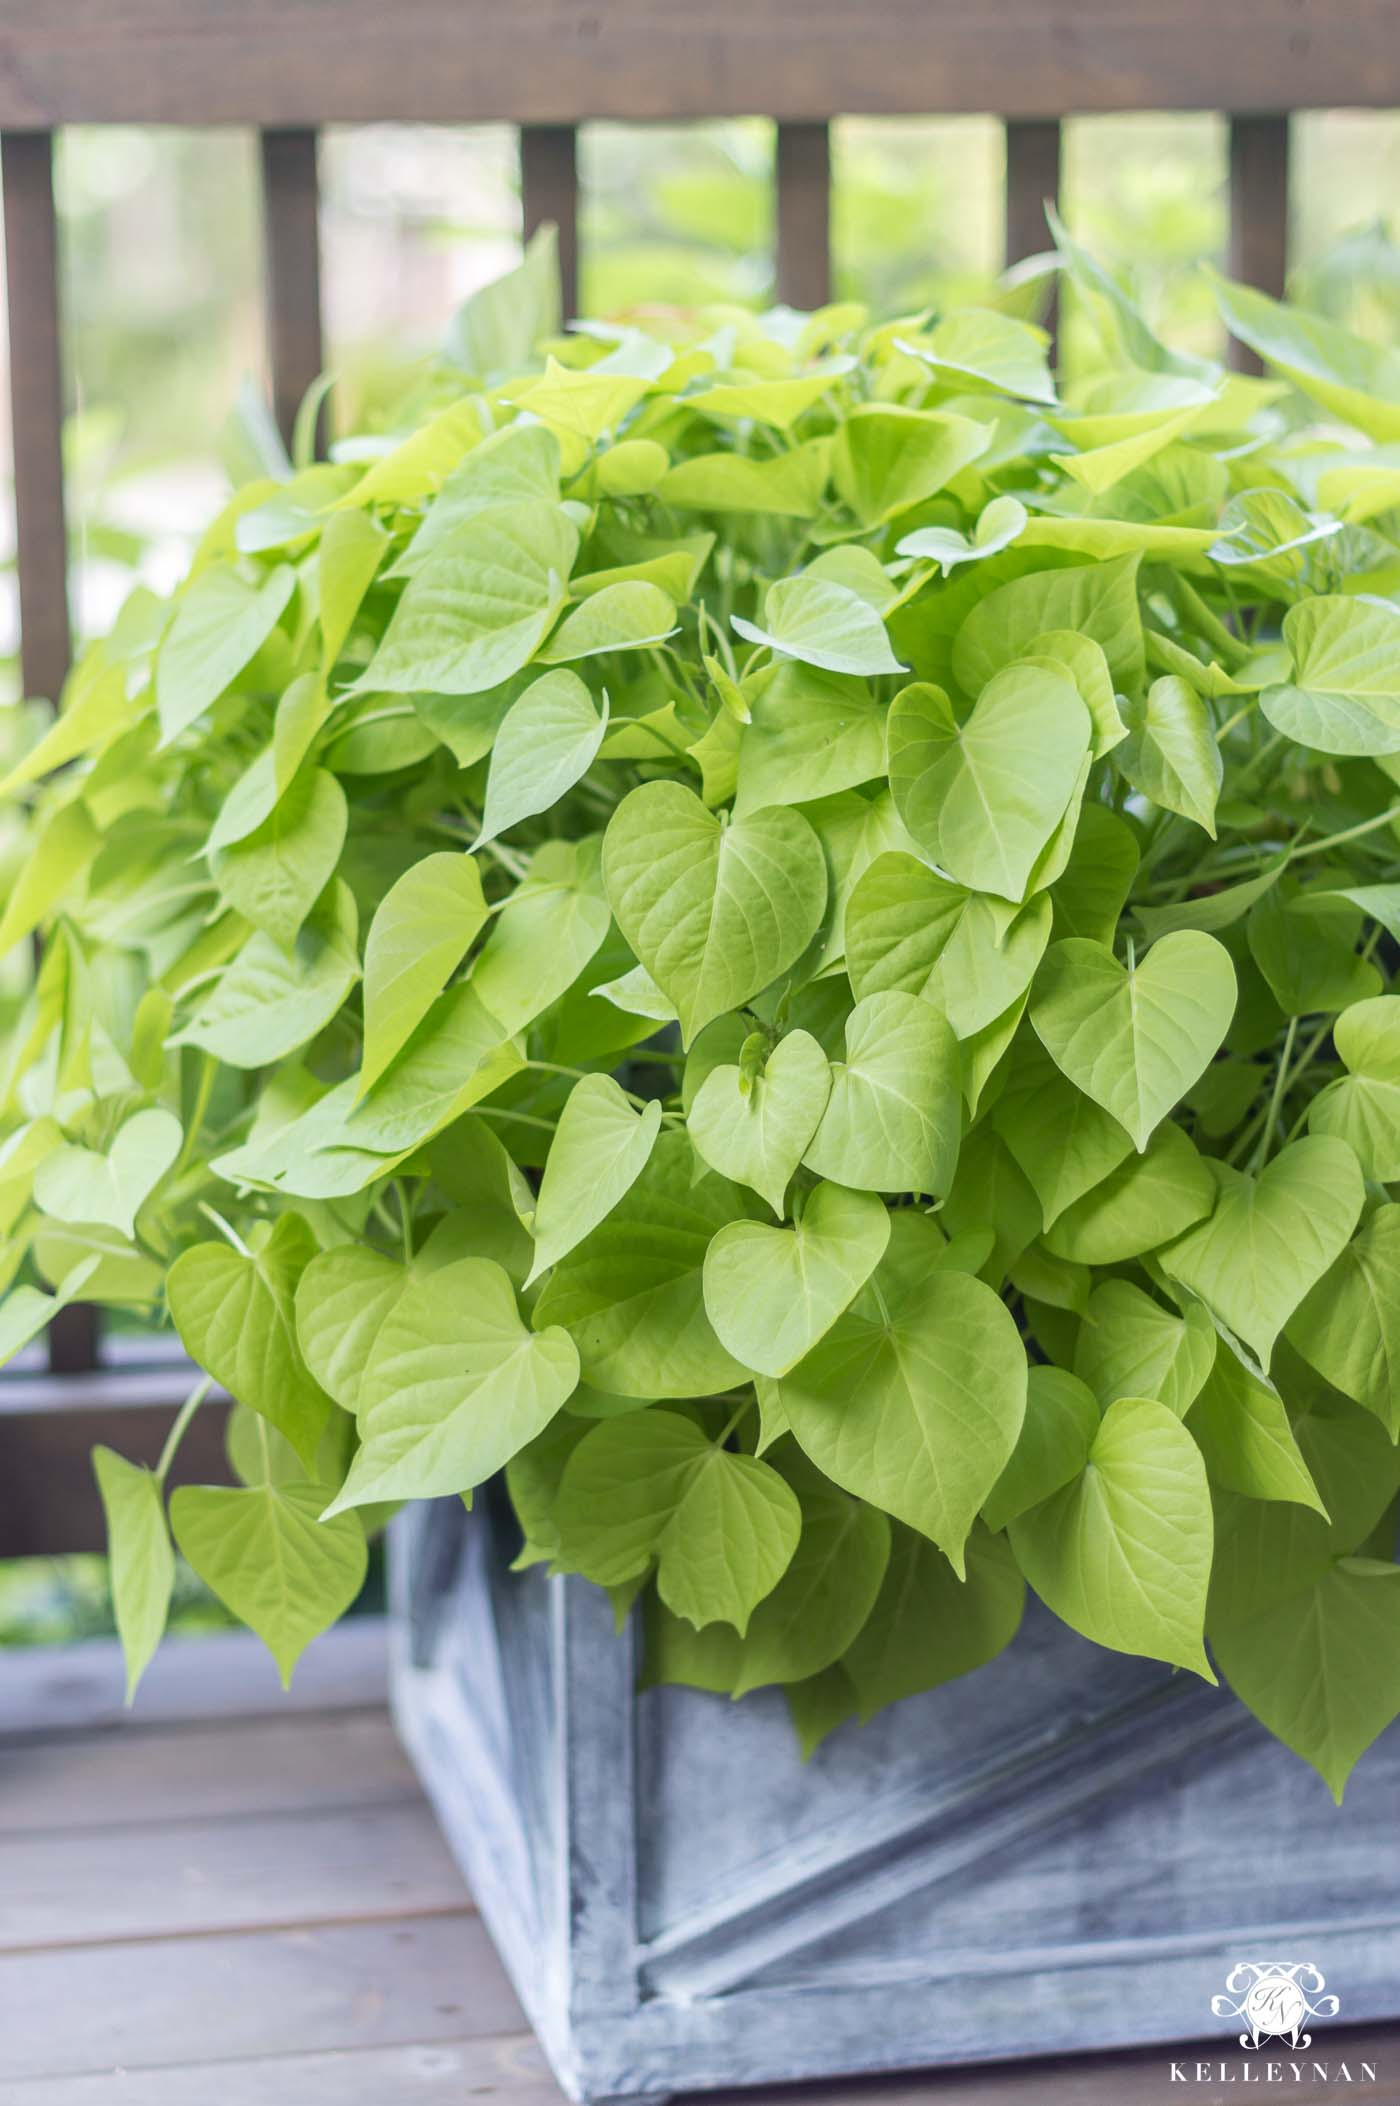 Sweet potato vines get huge in direct, hot sunlight and are perfect in deck or porch planters